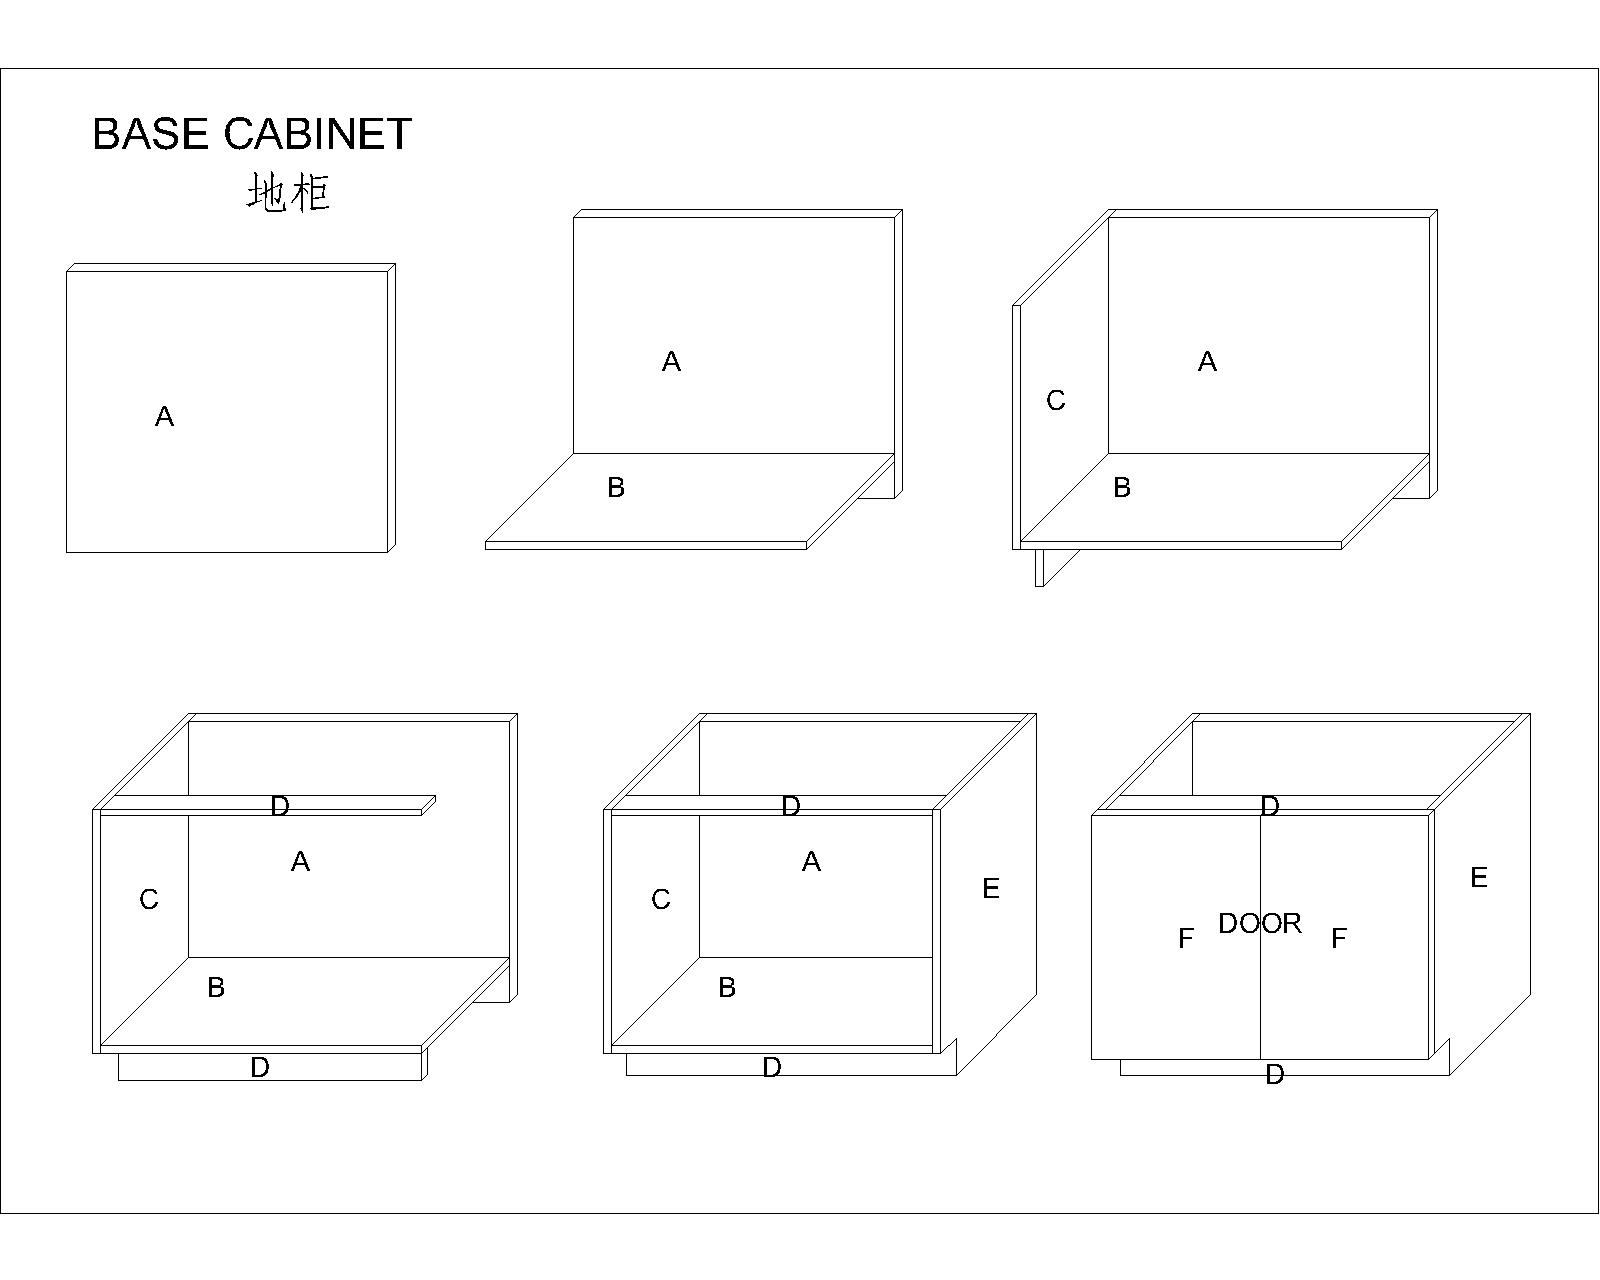 base cabinets assemble drawings